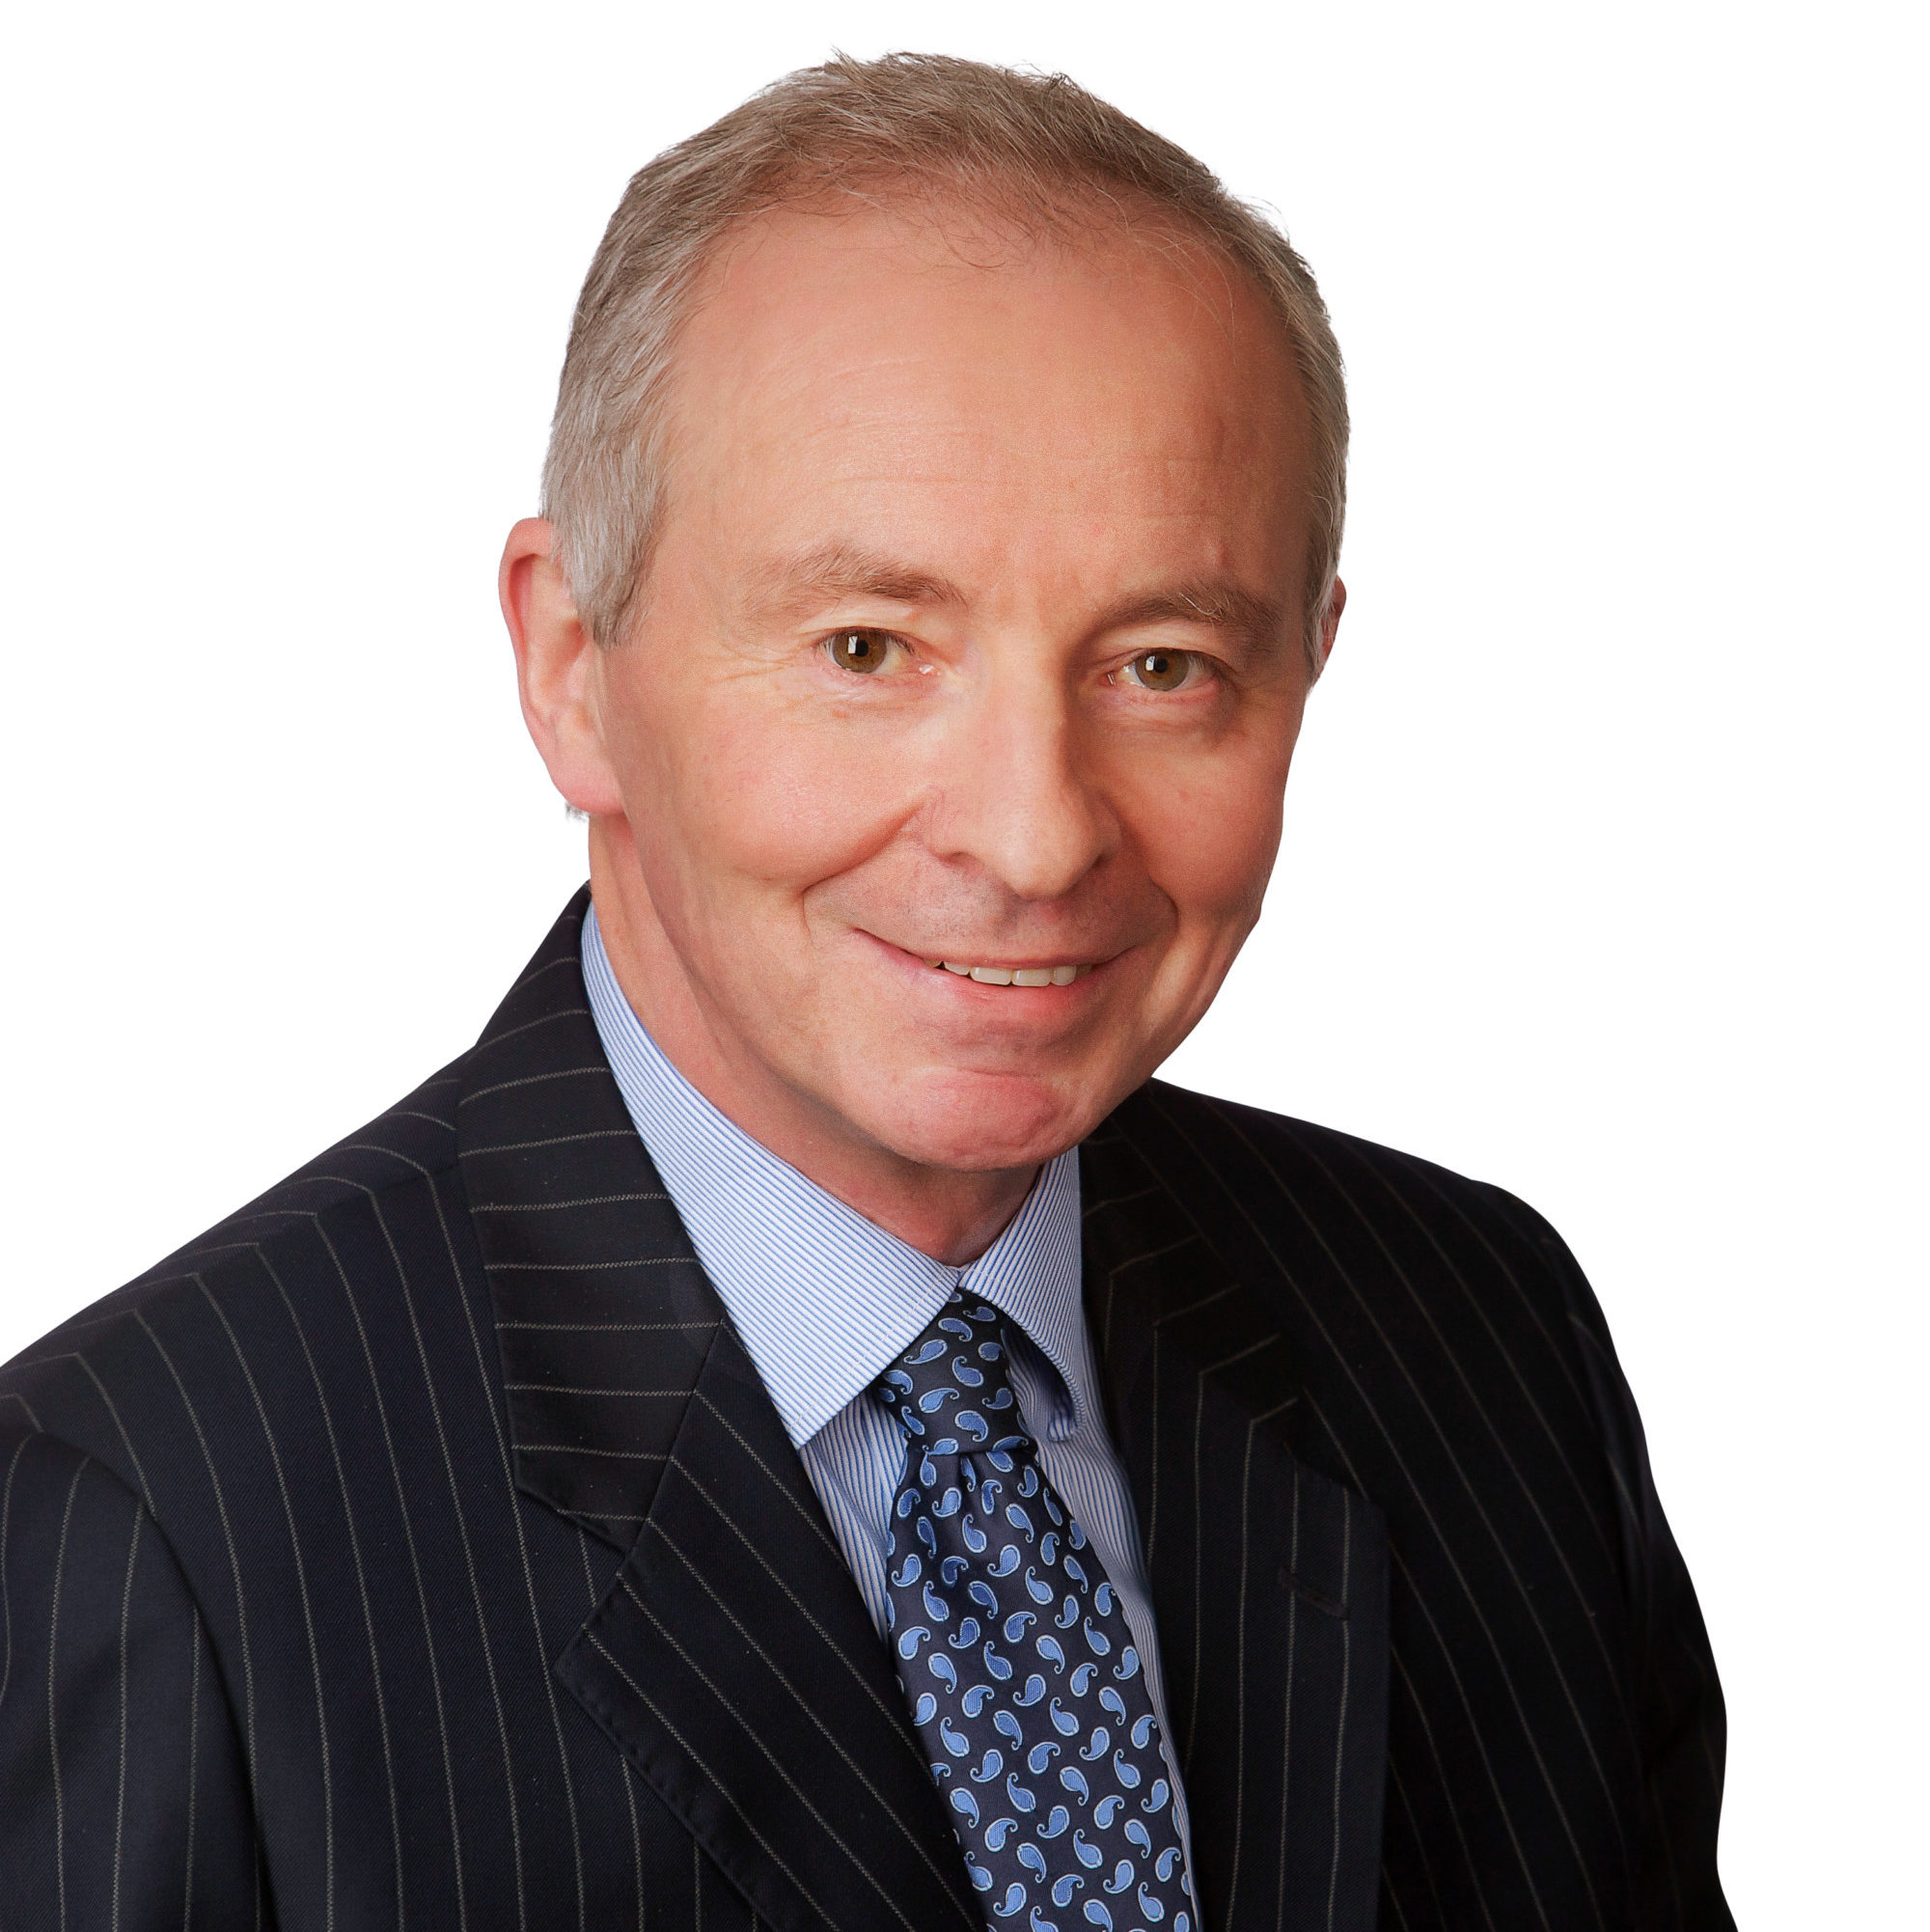 Eamon Booth - John Paul Construction - Non Executive Director